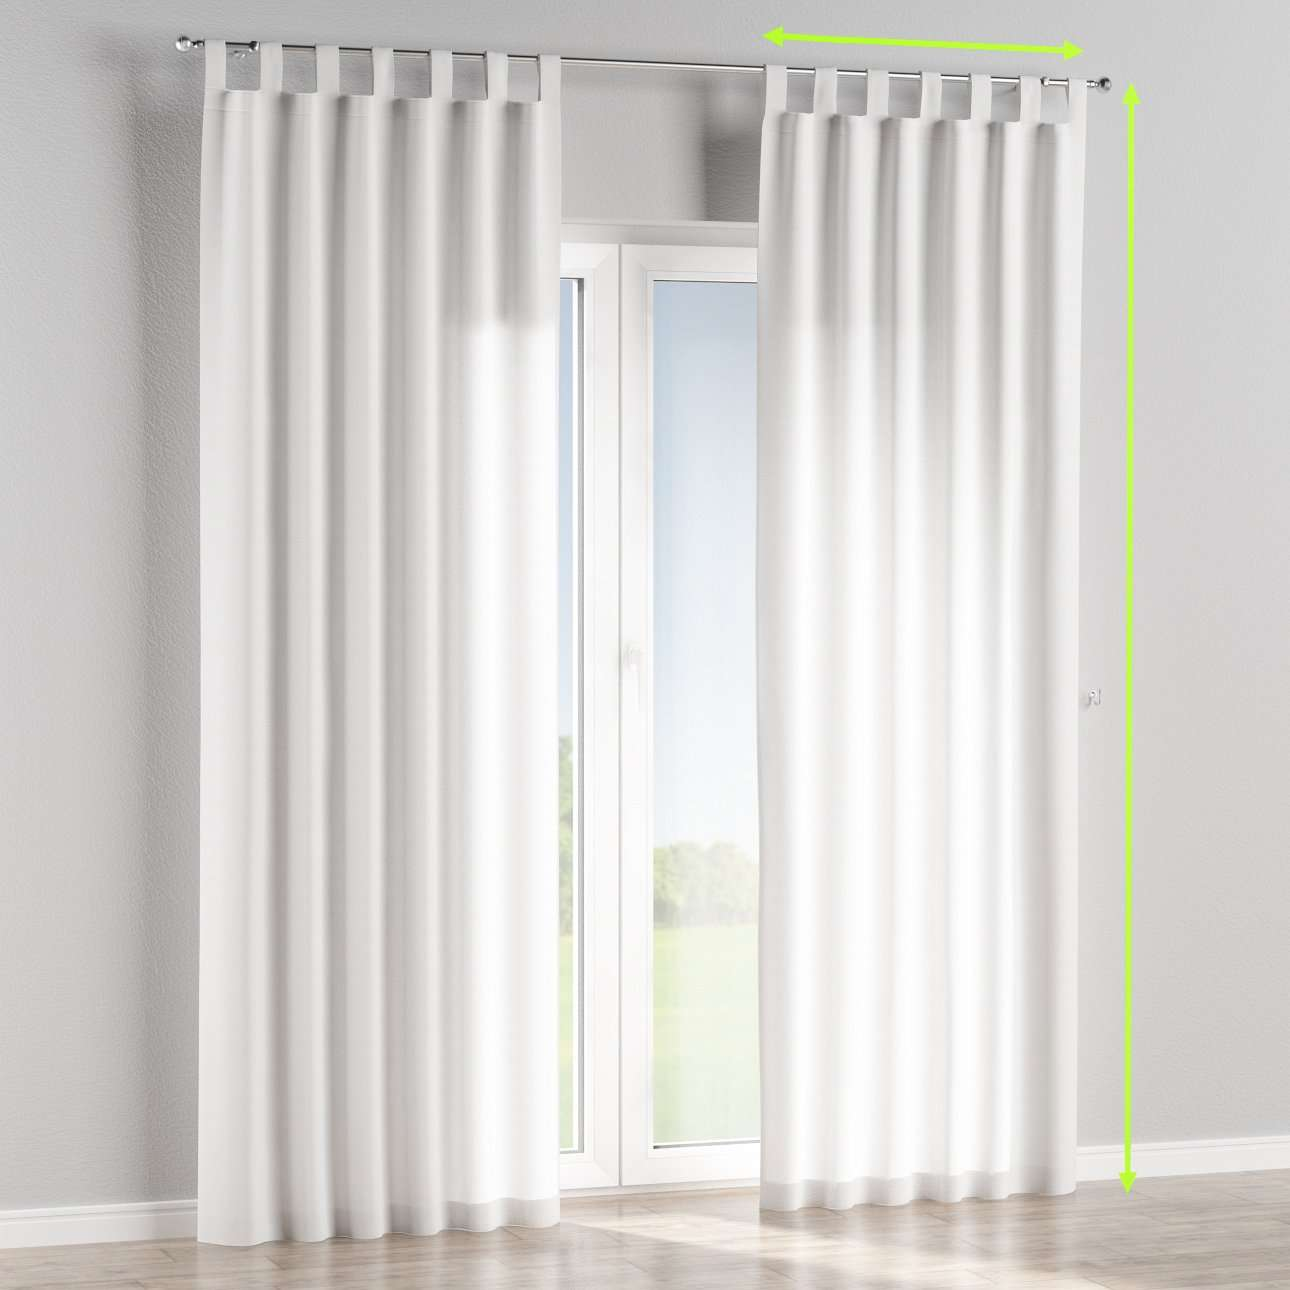 Tab top lined curtains in collection Jupiter, fabric: 127-01